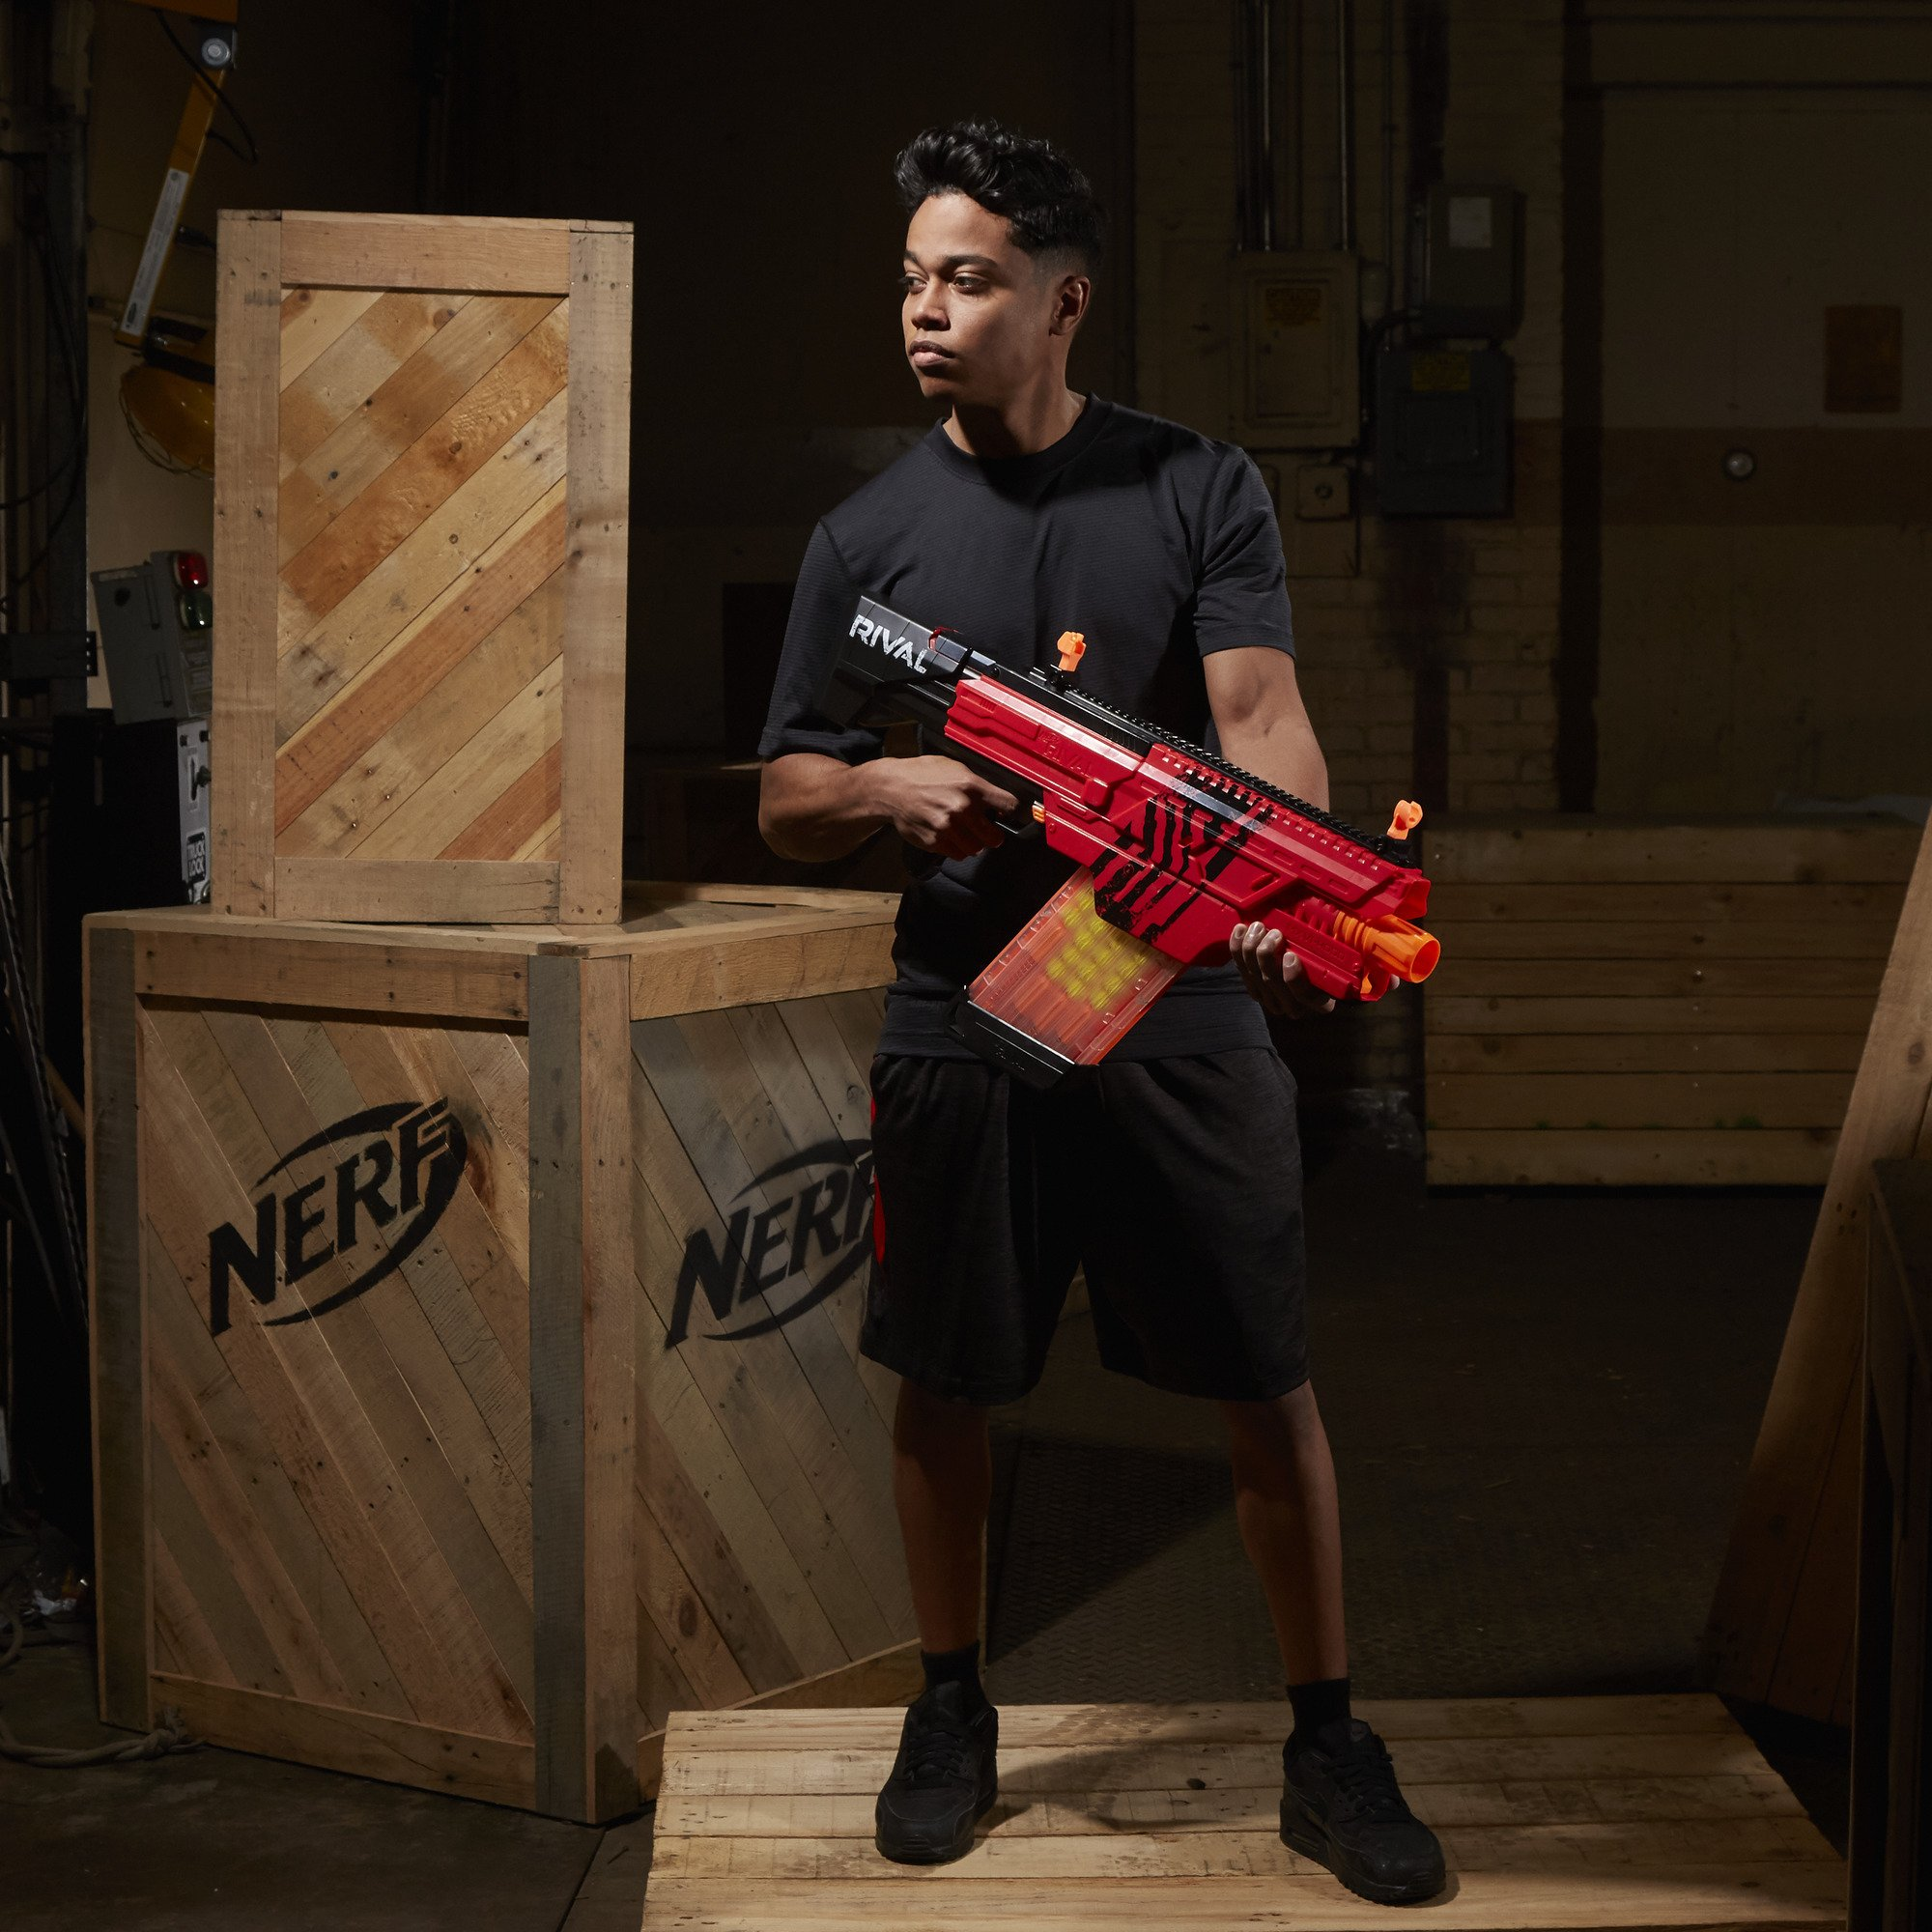 Nerf Rival Khaos MXVI-4000 Blaster (Red) by NERF (Image #7)